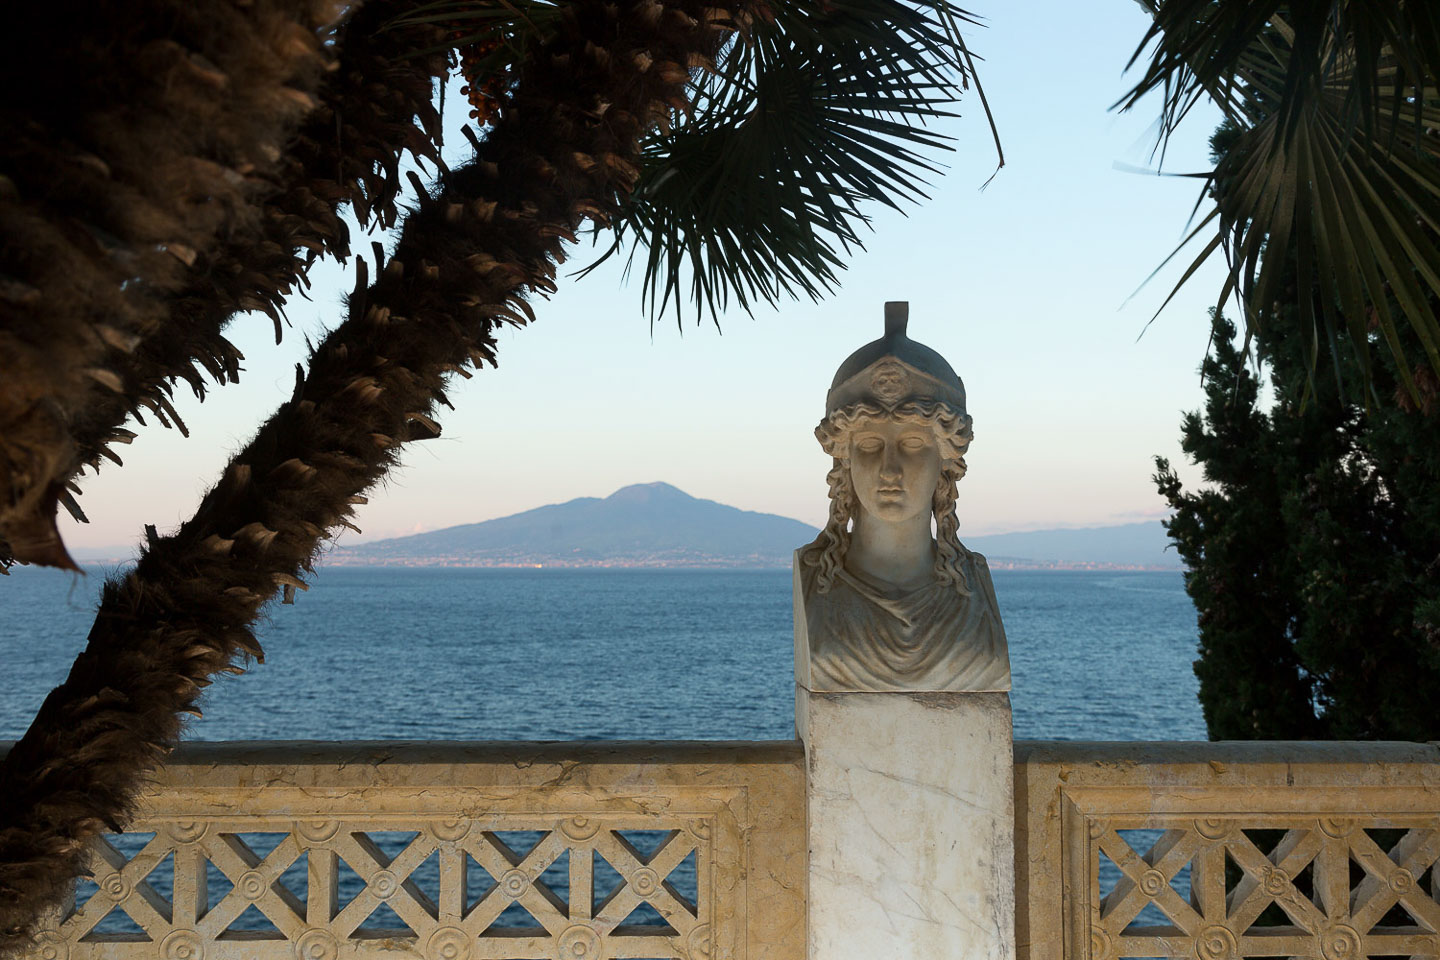 Villa Astor residence luxury accommodation home Benedetto Croce Amalfi Coast Sorrento garden belvedere Mount Vesuvius view sea marble antique statue head idyllic haven 17 1